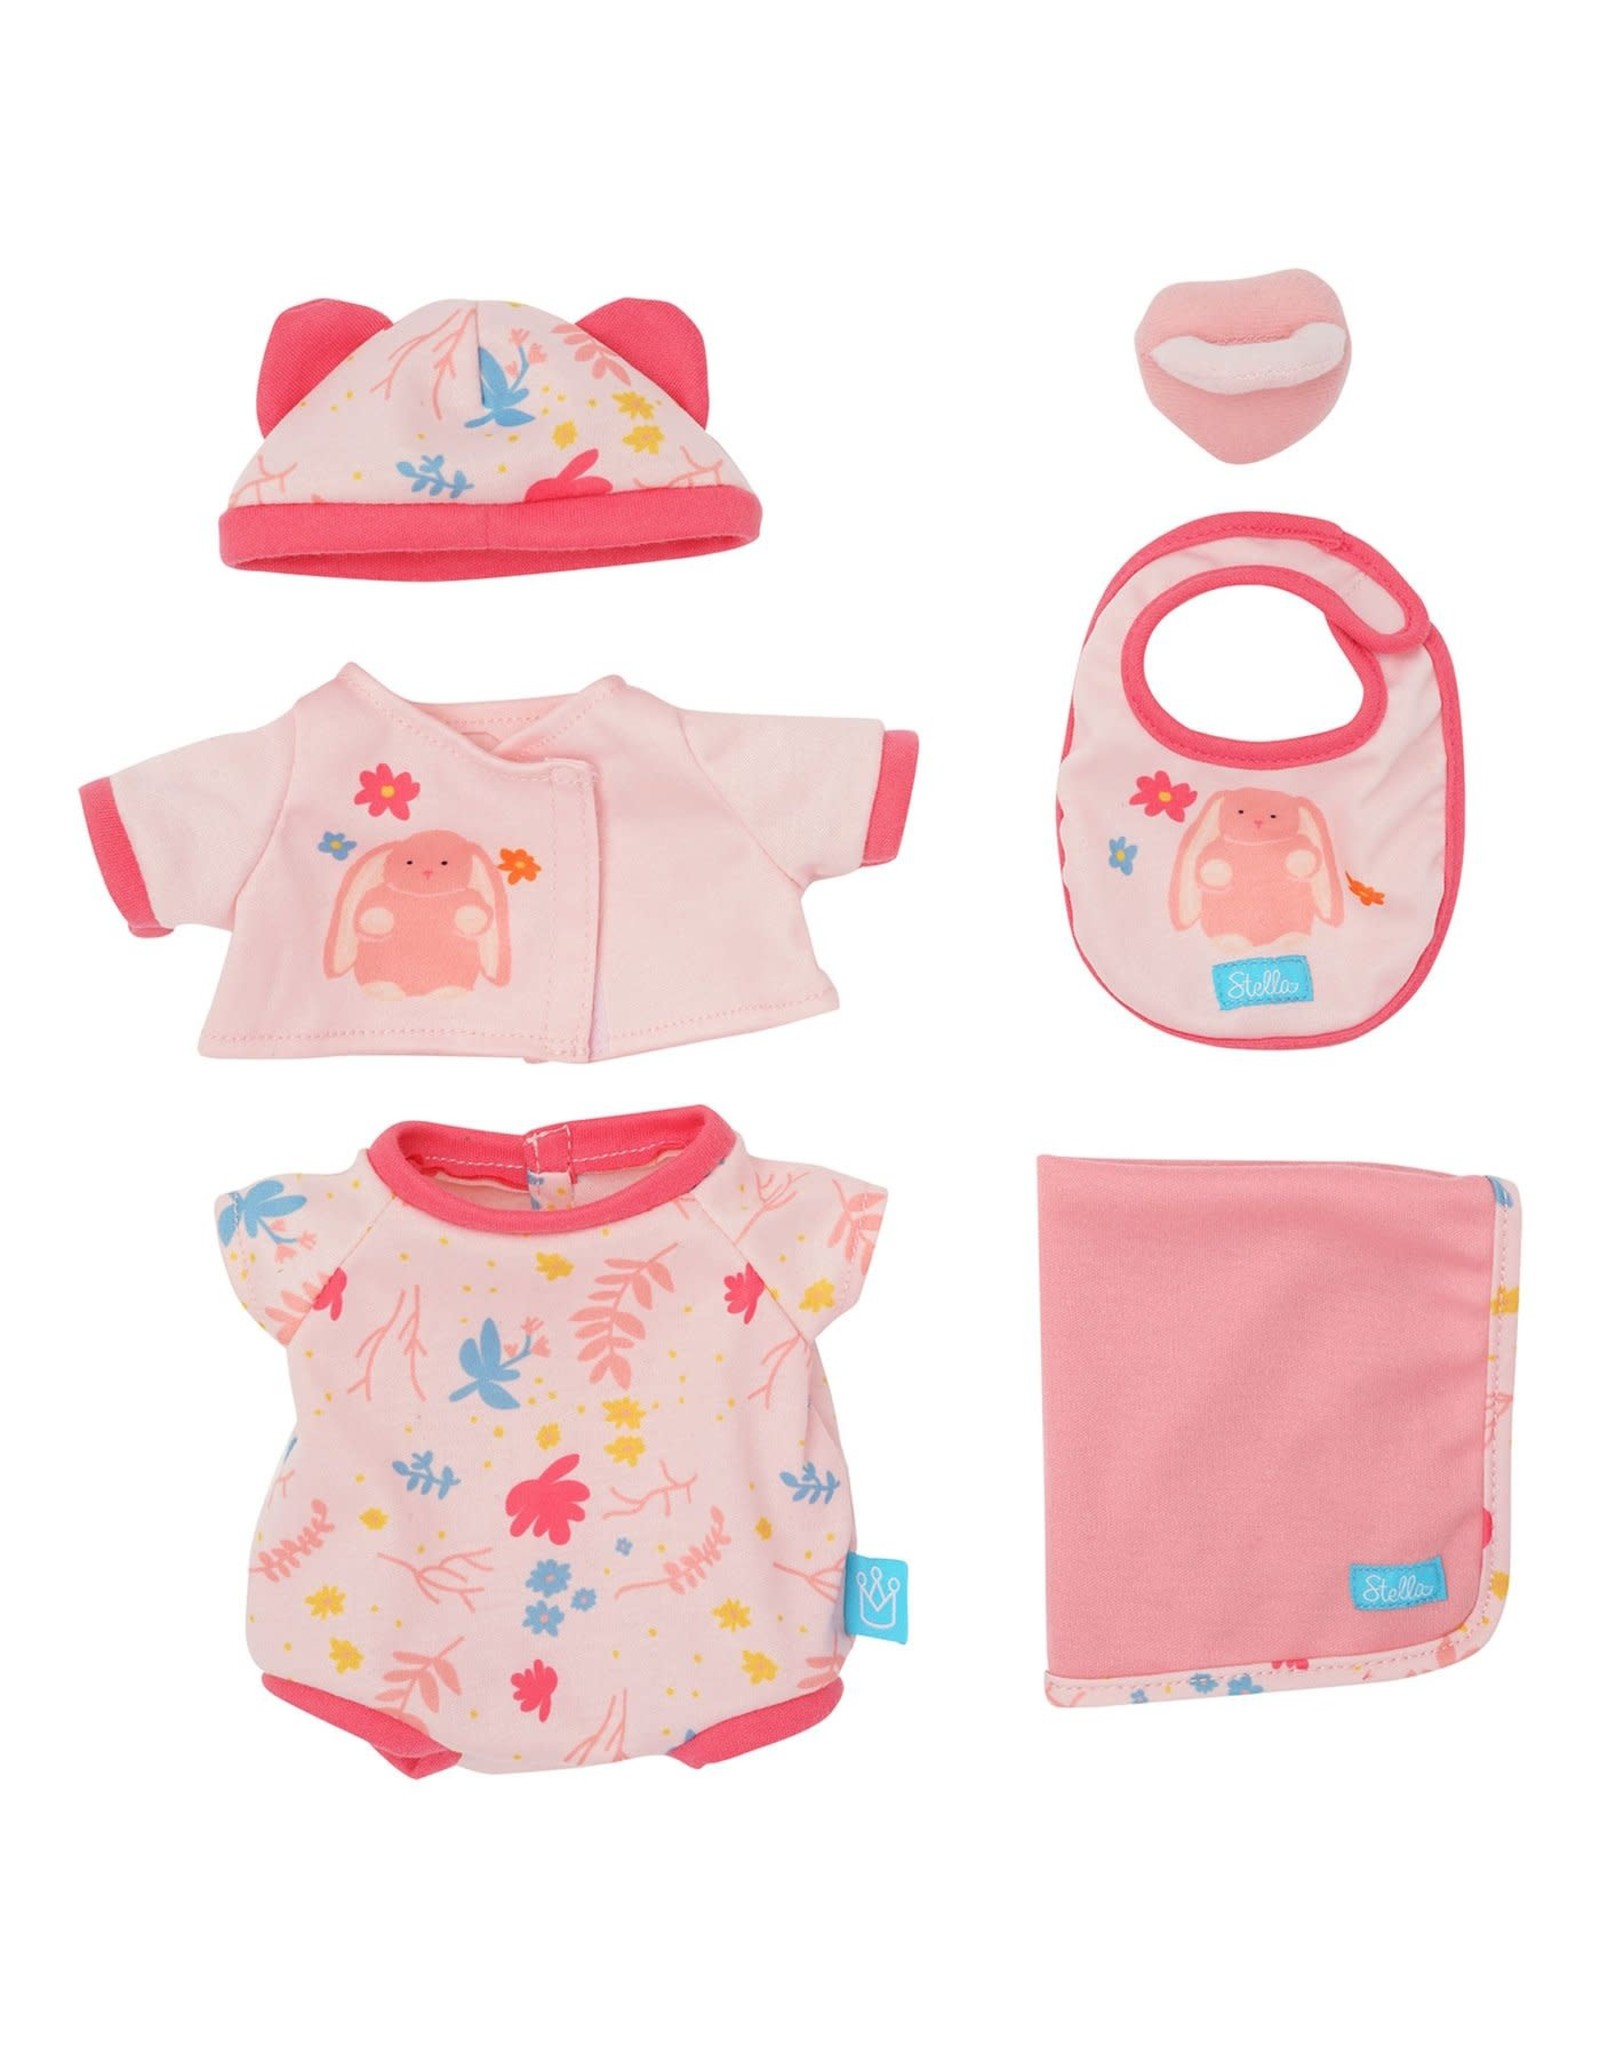 Baby Stella Baby Stella Welcome Baby Doll Accessory Set